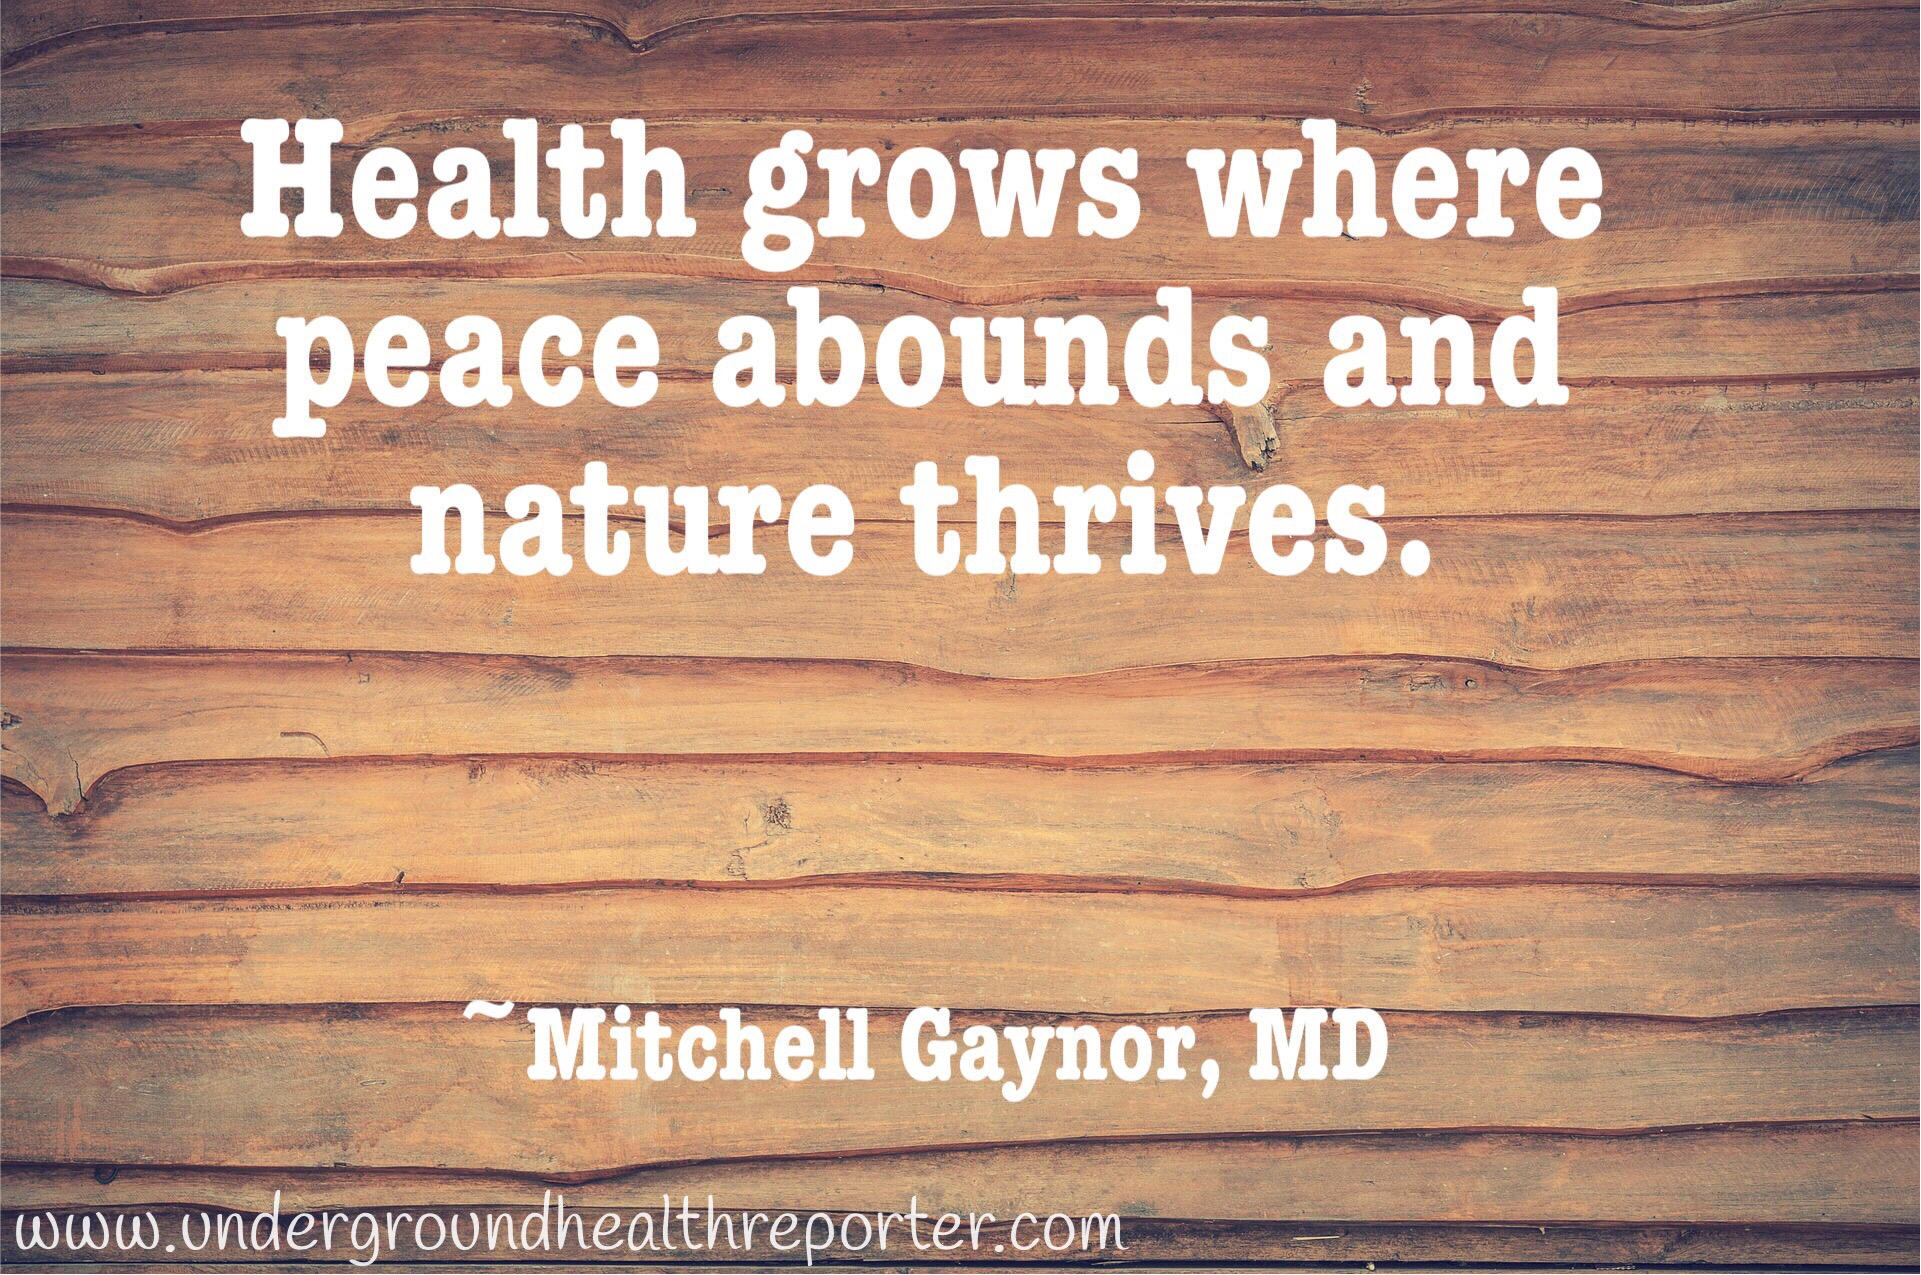 Mitchell Gaynor, MD quote